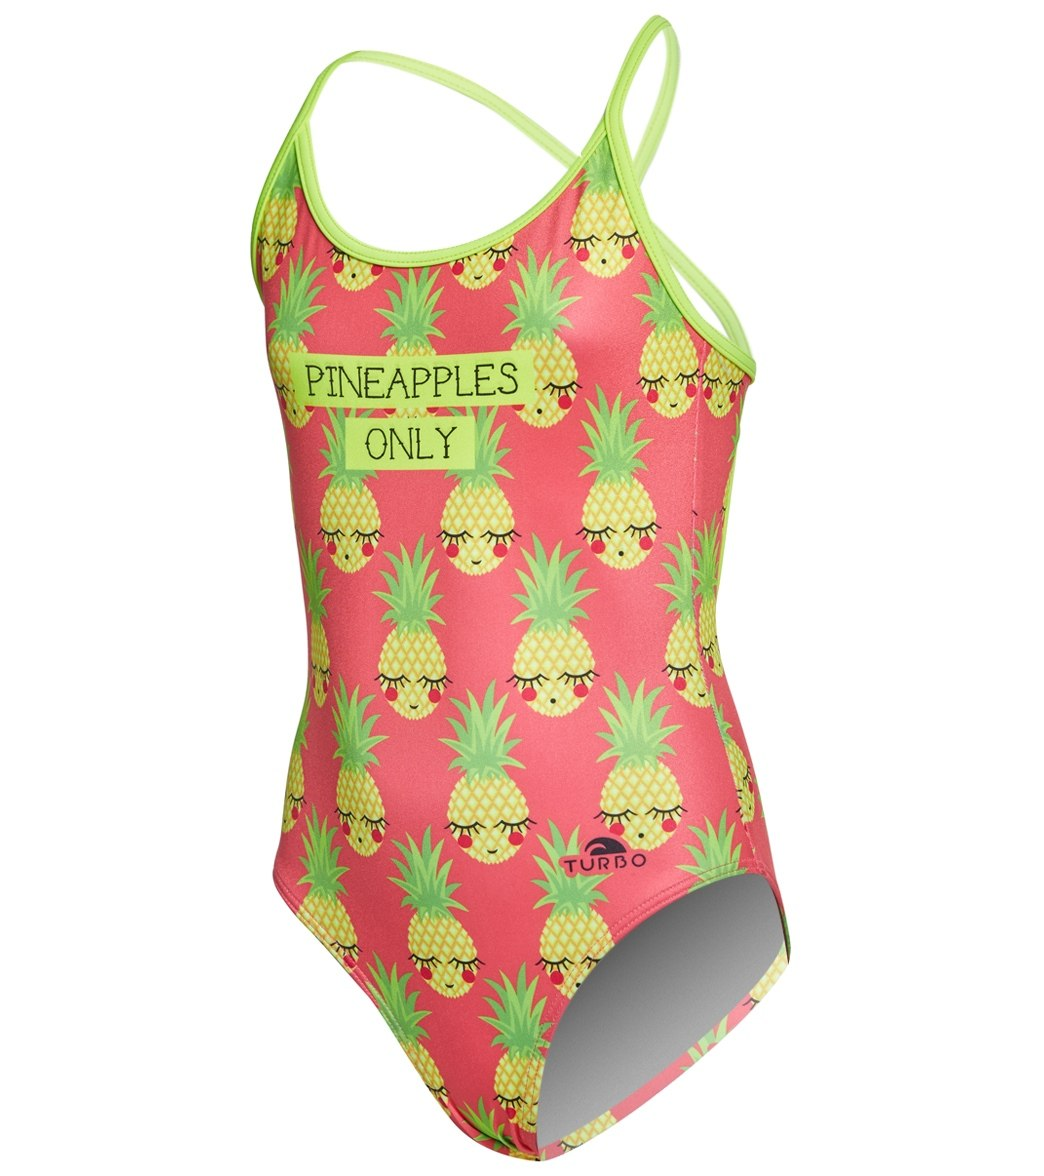 c4af5306c357e Turbo Girls' Pineapples Only One Piece Swimsuit at SwimOutlet.com